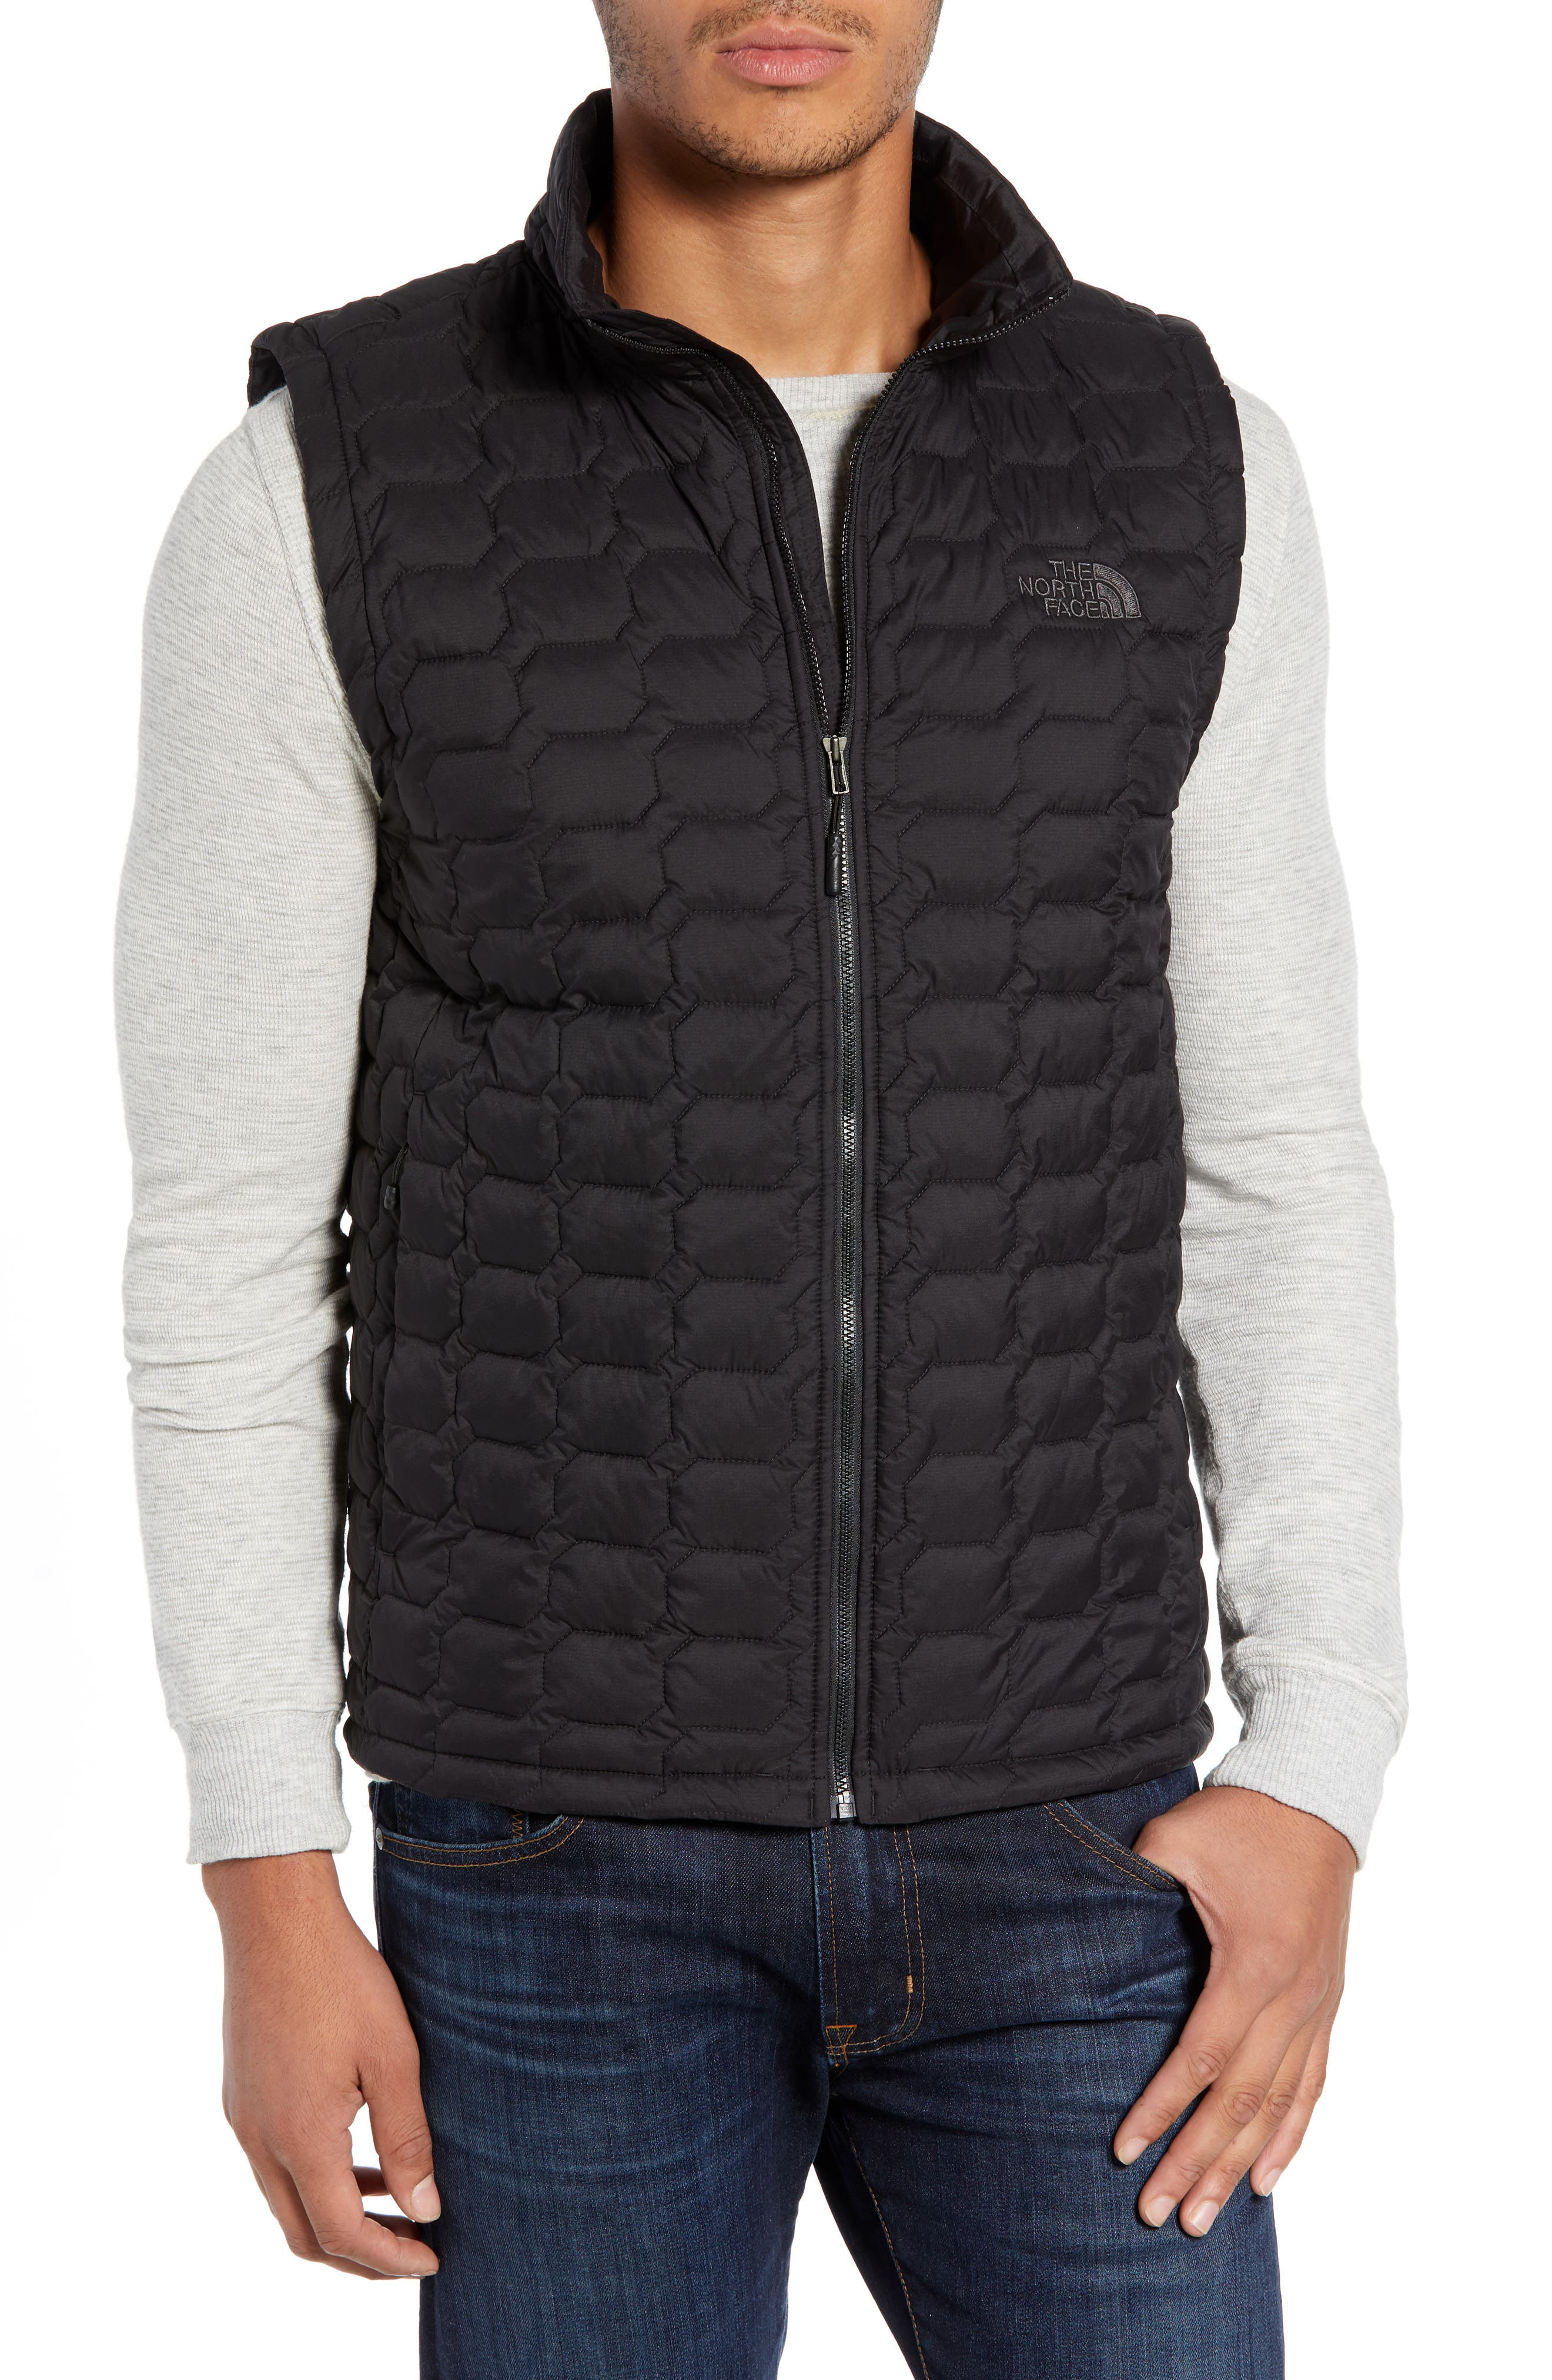 THE NORTH FACE, Thermoball<sup>®</sup> PrimaLoft<sup>®</sup> Vest, Main thumbnail 1, color, TNF BLACK MATTE